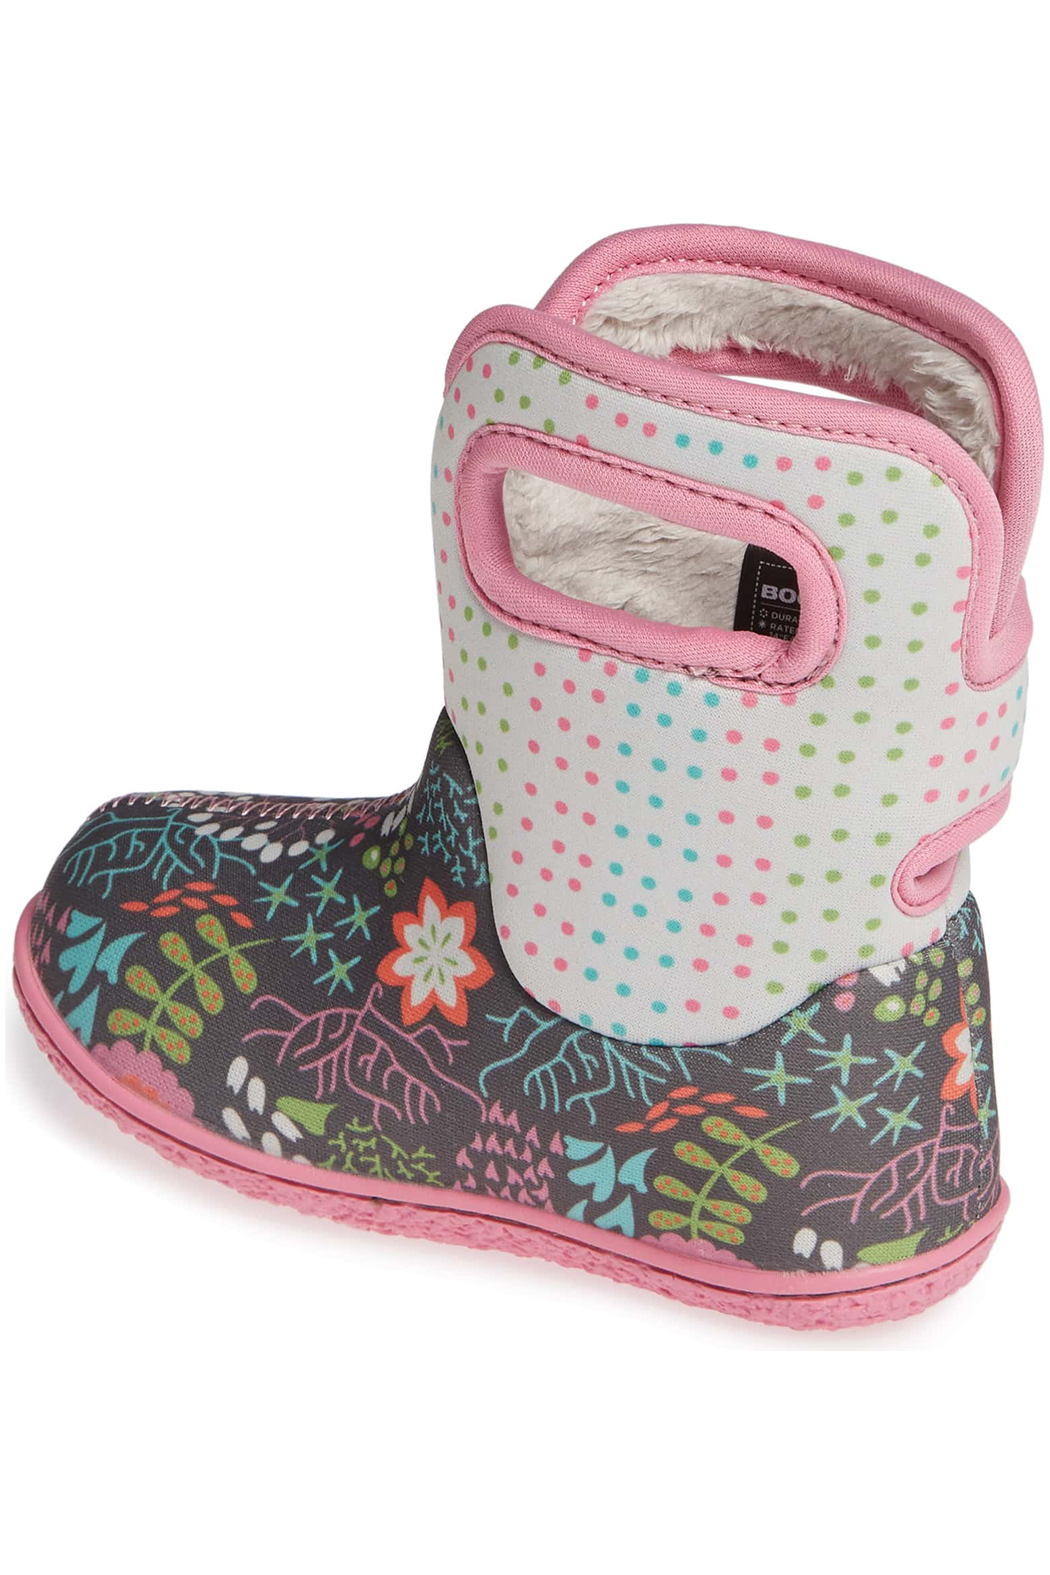 BOGS Baby Bogs Gray Flower Dot Waterproof Boot - Back Cropped Image